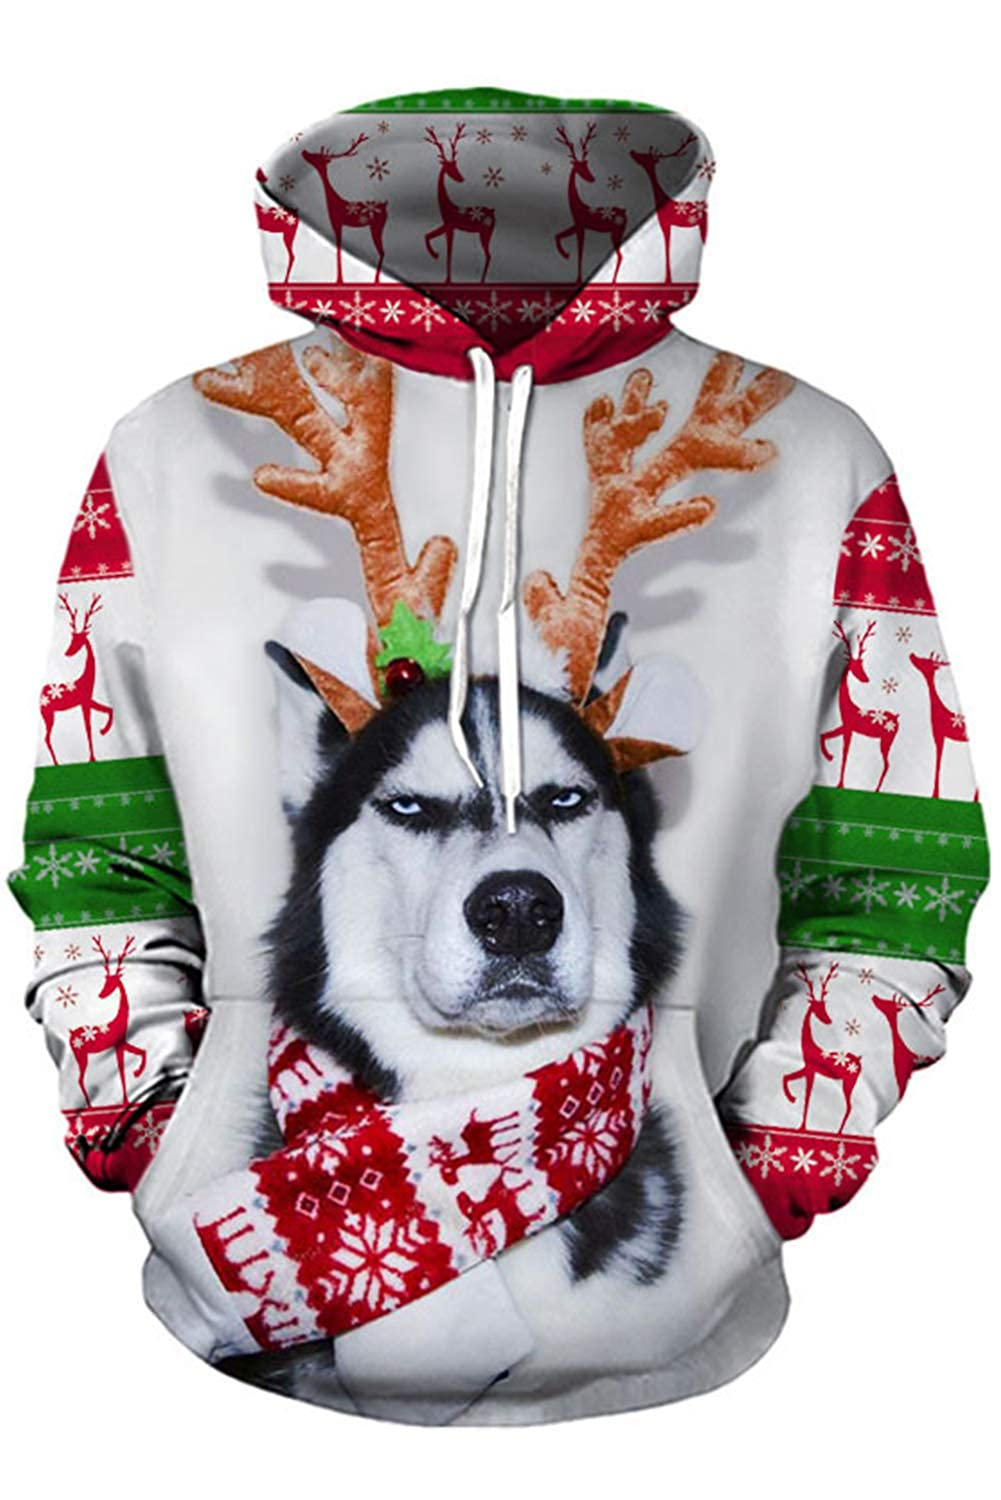 Dark Paradise Christmas Unisex Husky 3D Printed Hoodie Dog Print Xmas Pullover Casual Hooded Sweater